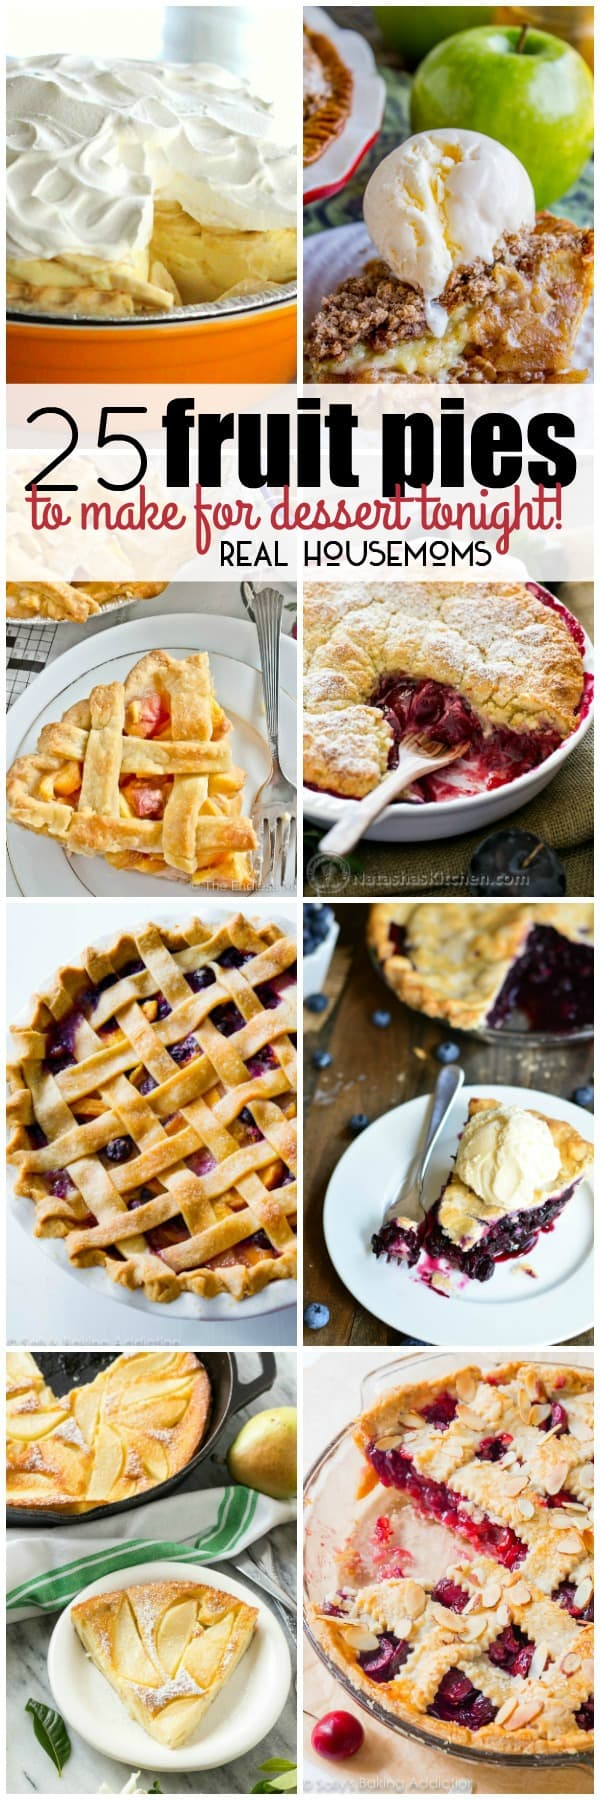 No matter which fruits are your favorite, you'll find a pie to please your palate in this list of 25 Fruit Pies to Make for Dessert Tonight!